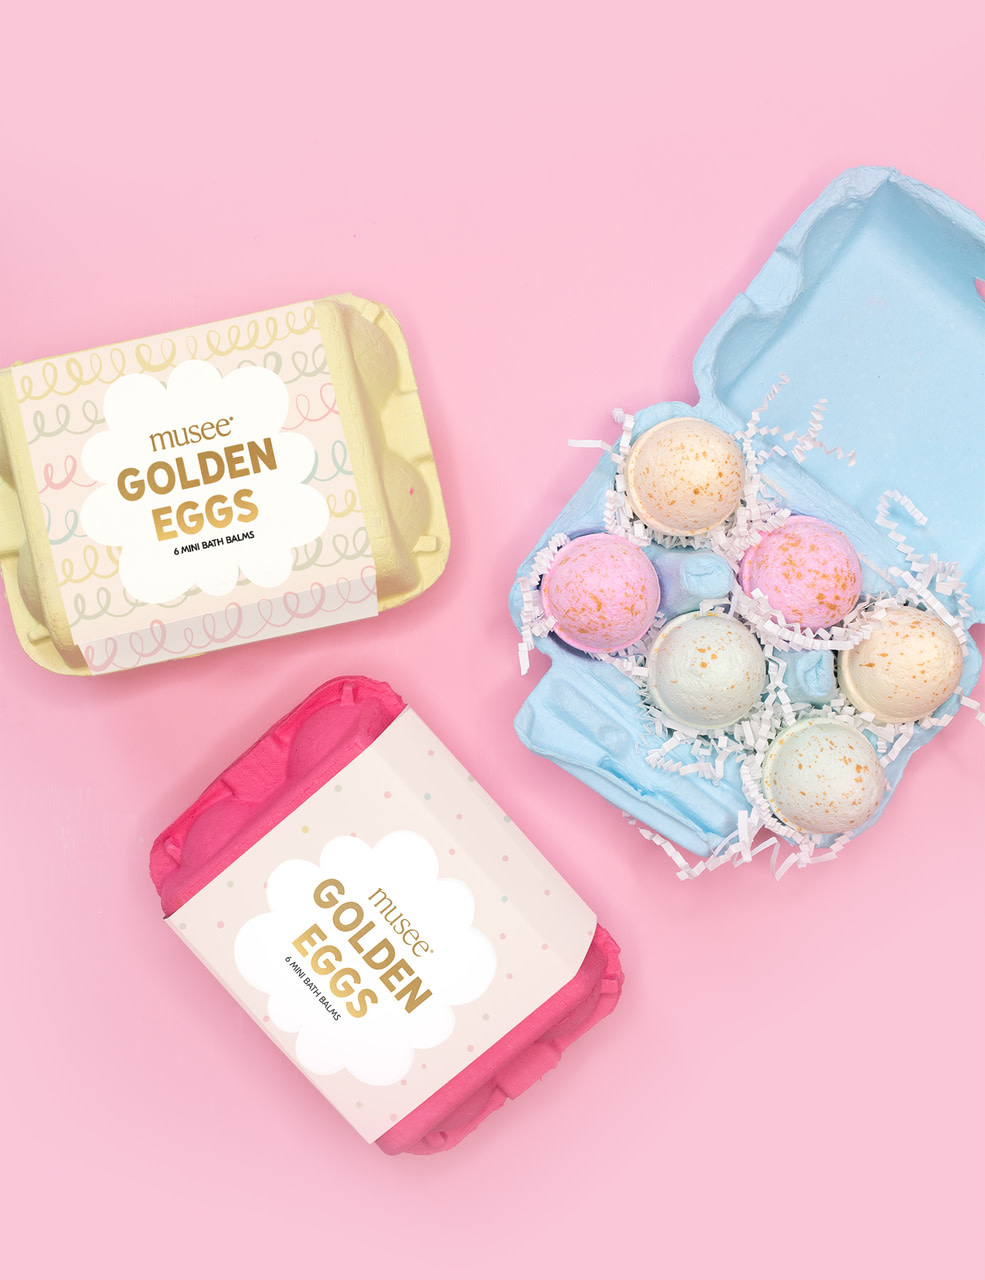 Musee Golden Eggs Carton